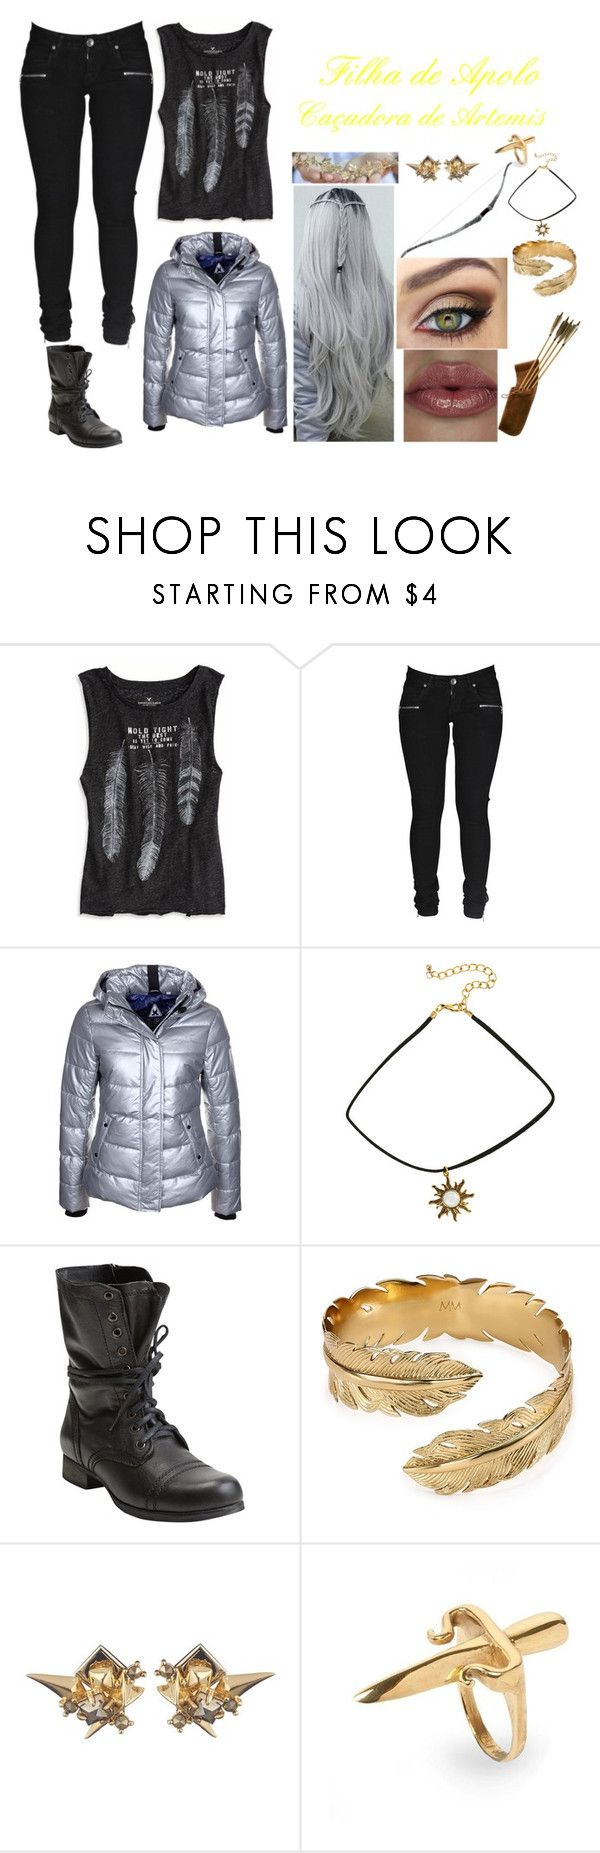 """""""Daughter of Apolo #31"""" by yasmim-maria ❤ liked on Polyvore featuring American Eagle Outfitters, Dr. Denim, Gaastra, Steve Madden, MAC Cosmetics, Melinda Maria, Alexis Bittar and LeiVanKash"""